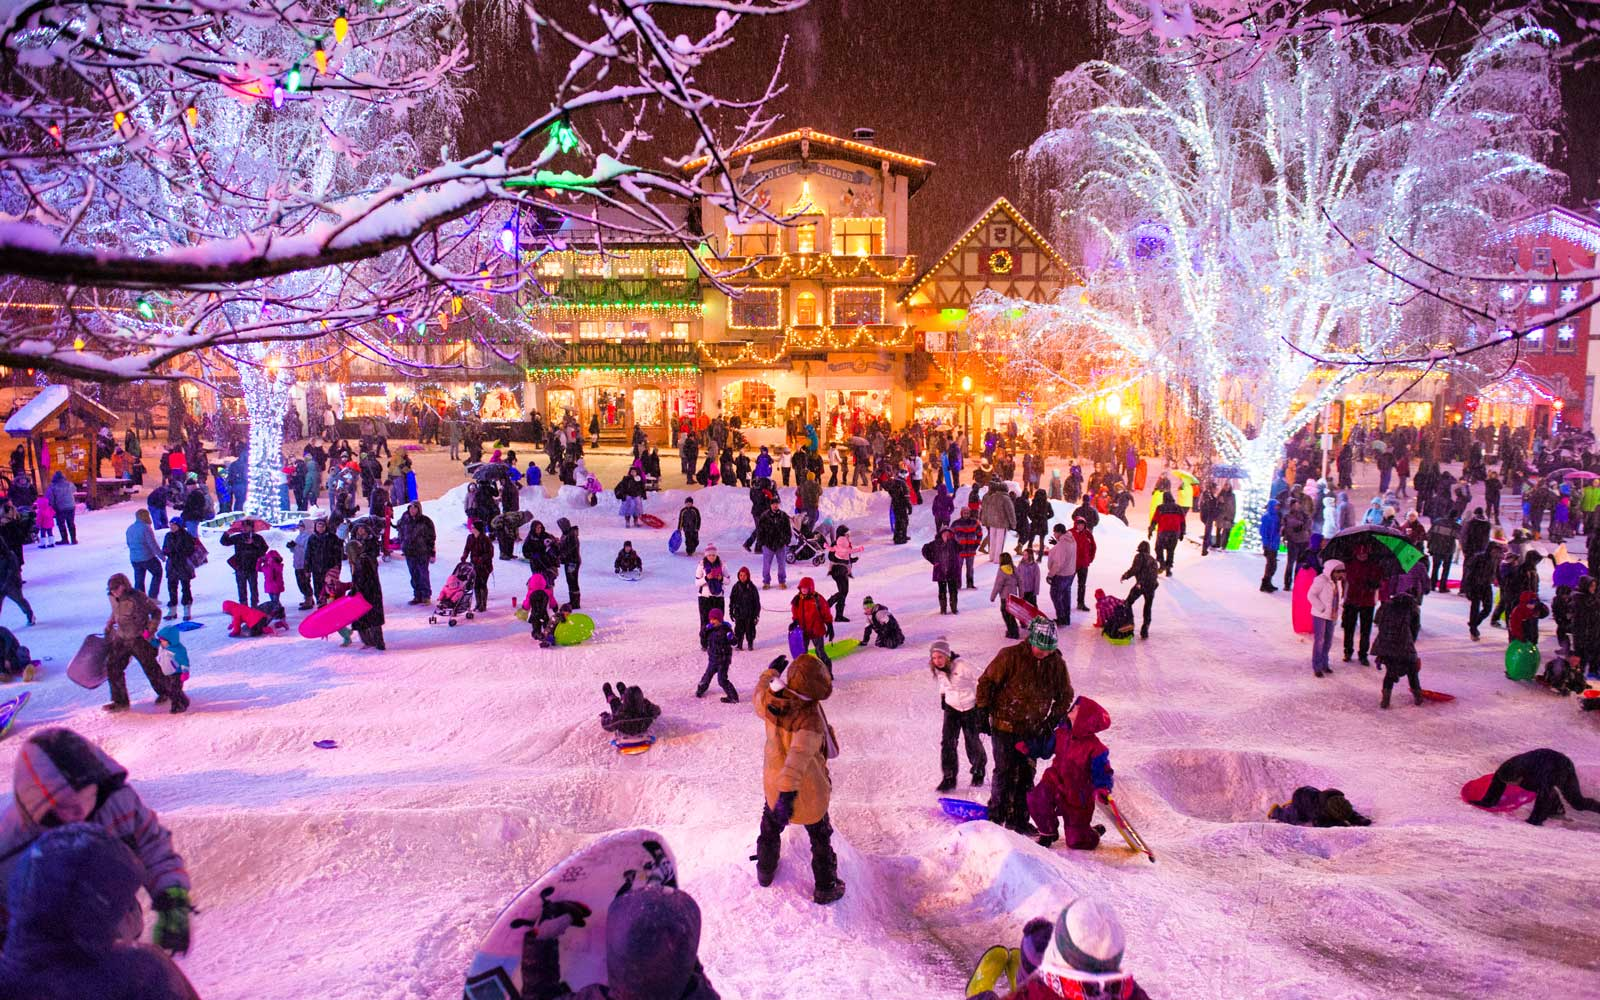 Best Winter Festivals in the U.S.